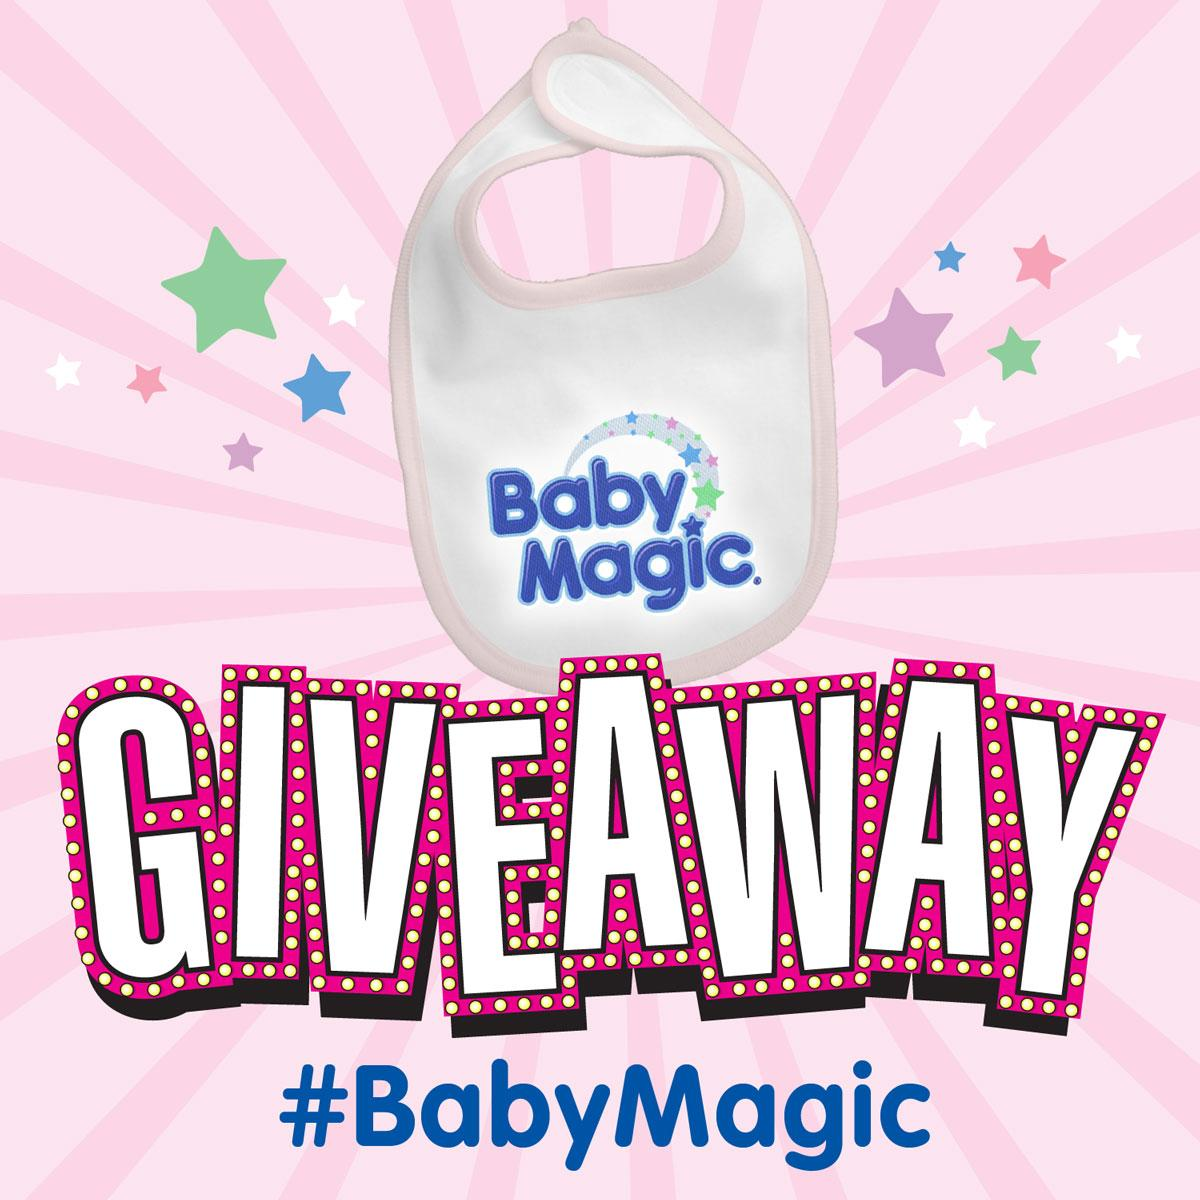 Retweet this for a chance to win a Baby Magic bib! #BabyMagic We'll announce the winner tomorrow. http://t.co/2xxRK1tSFu